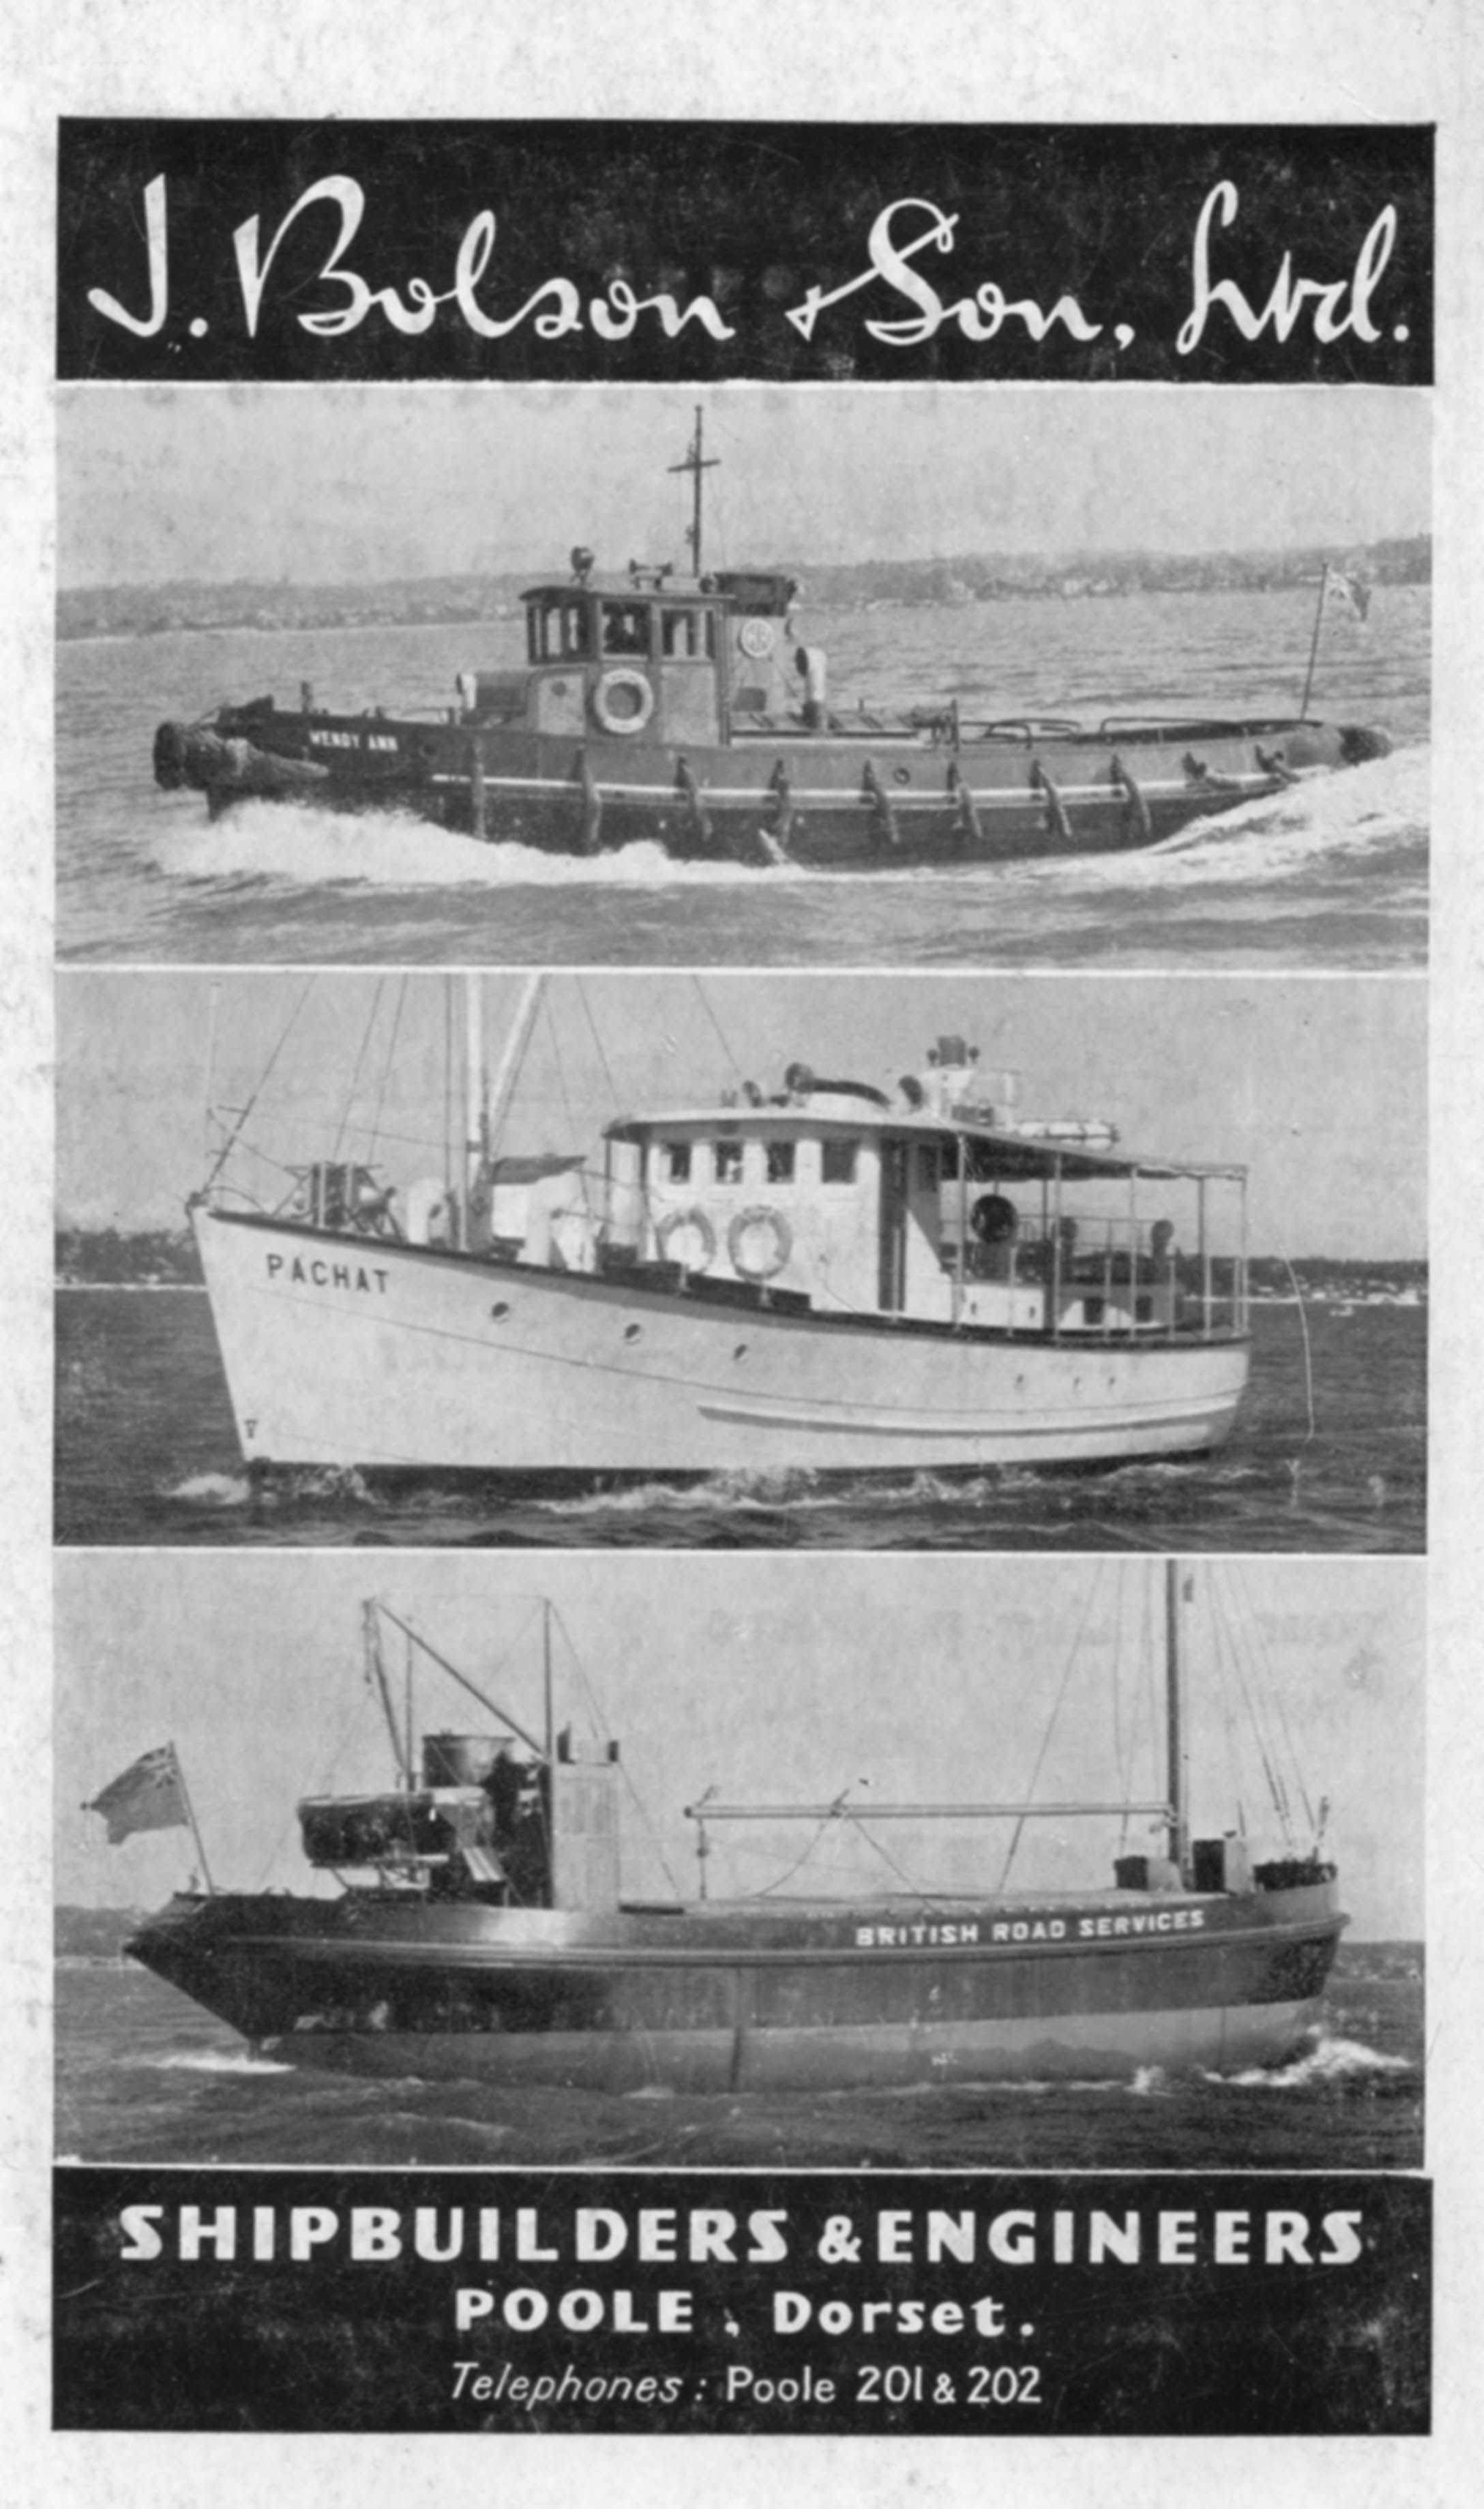 J. Bolson & Son Shipbuilders & Enginneers.jpg